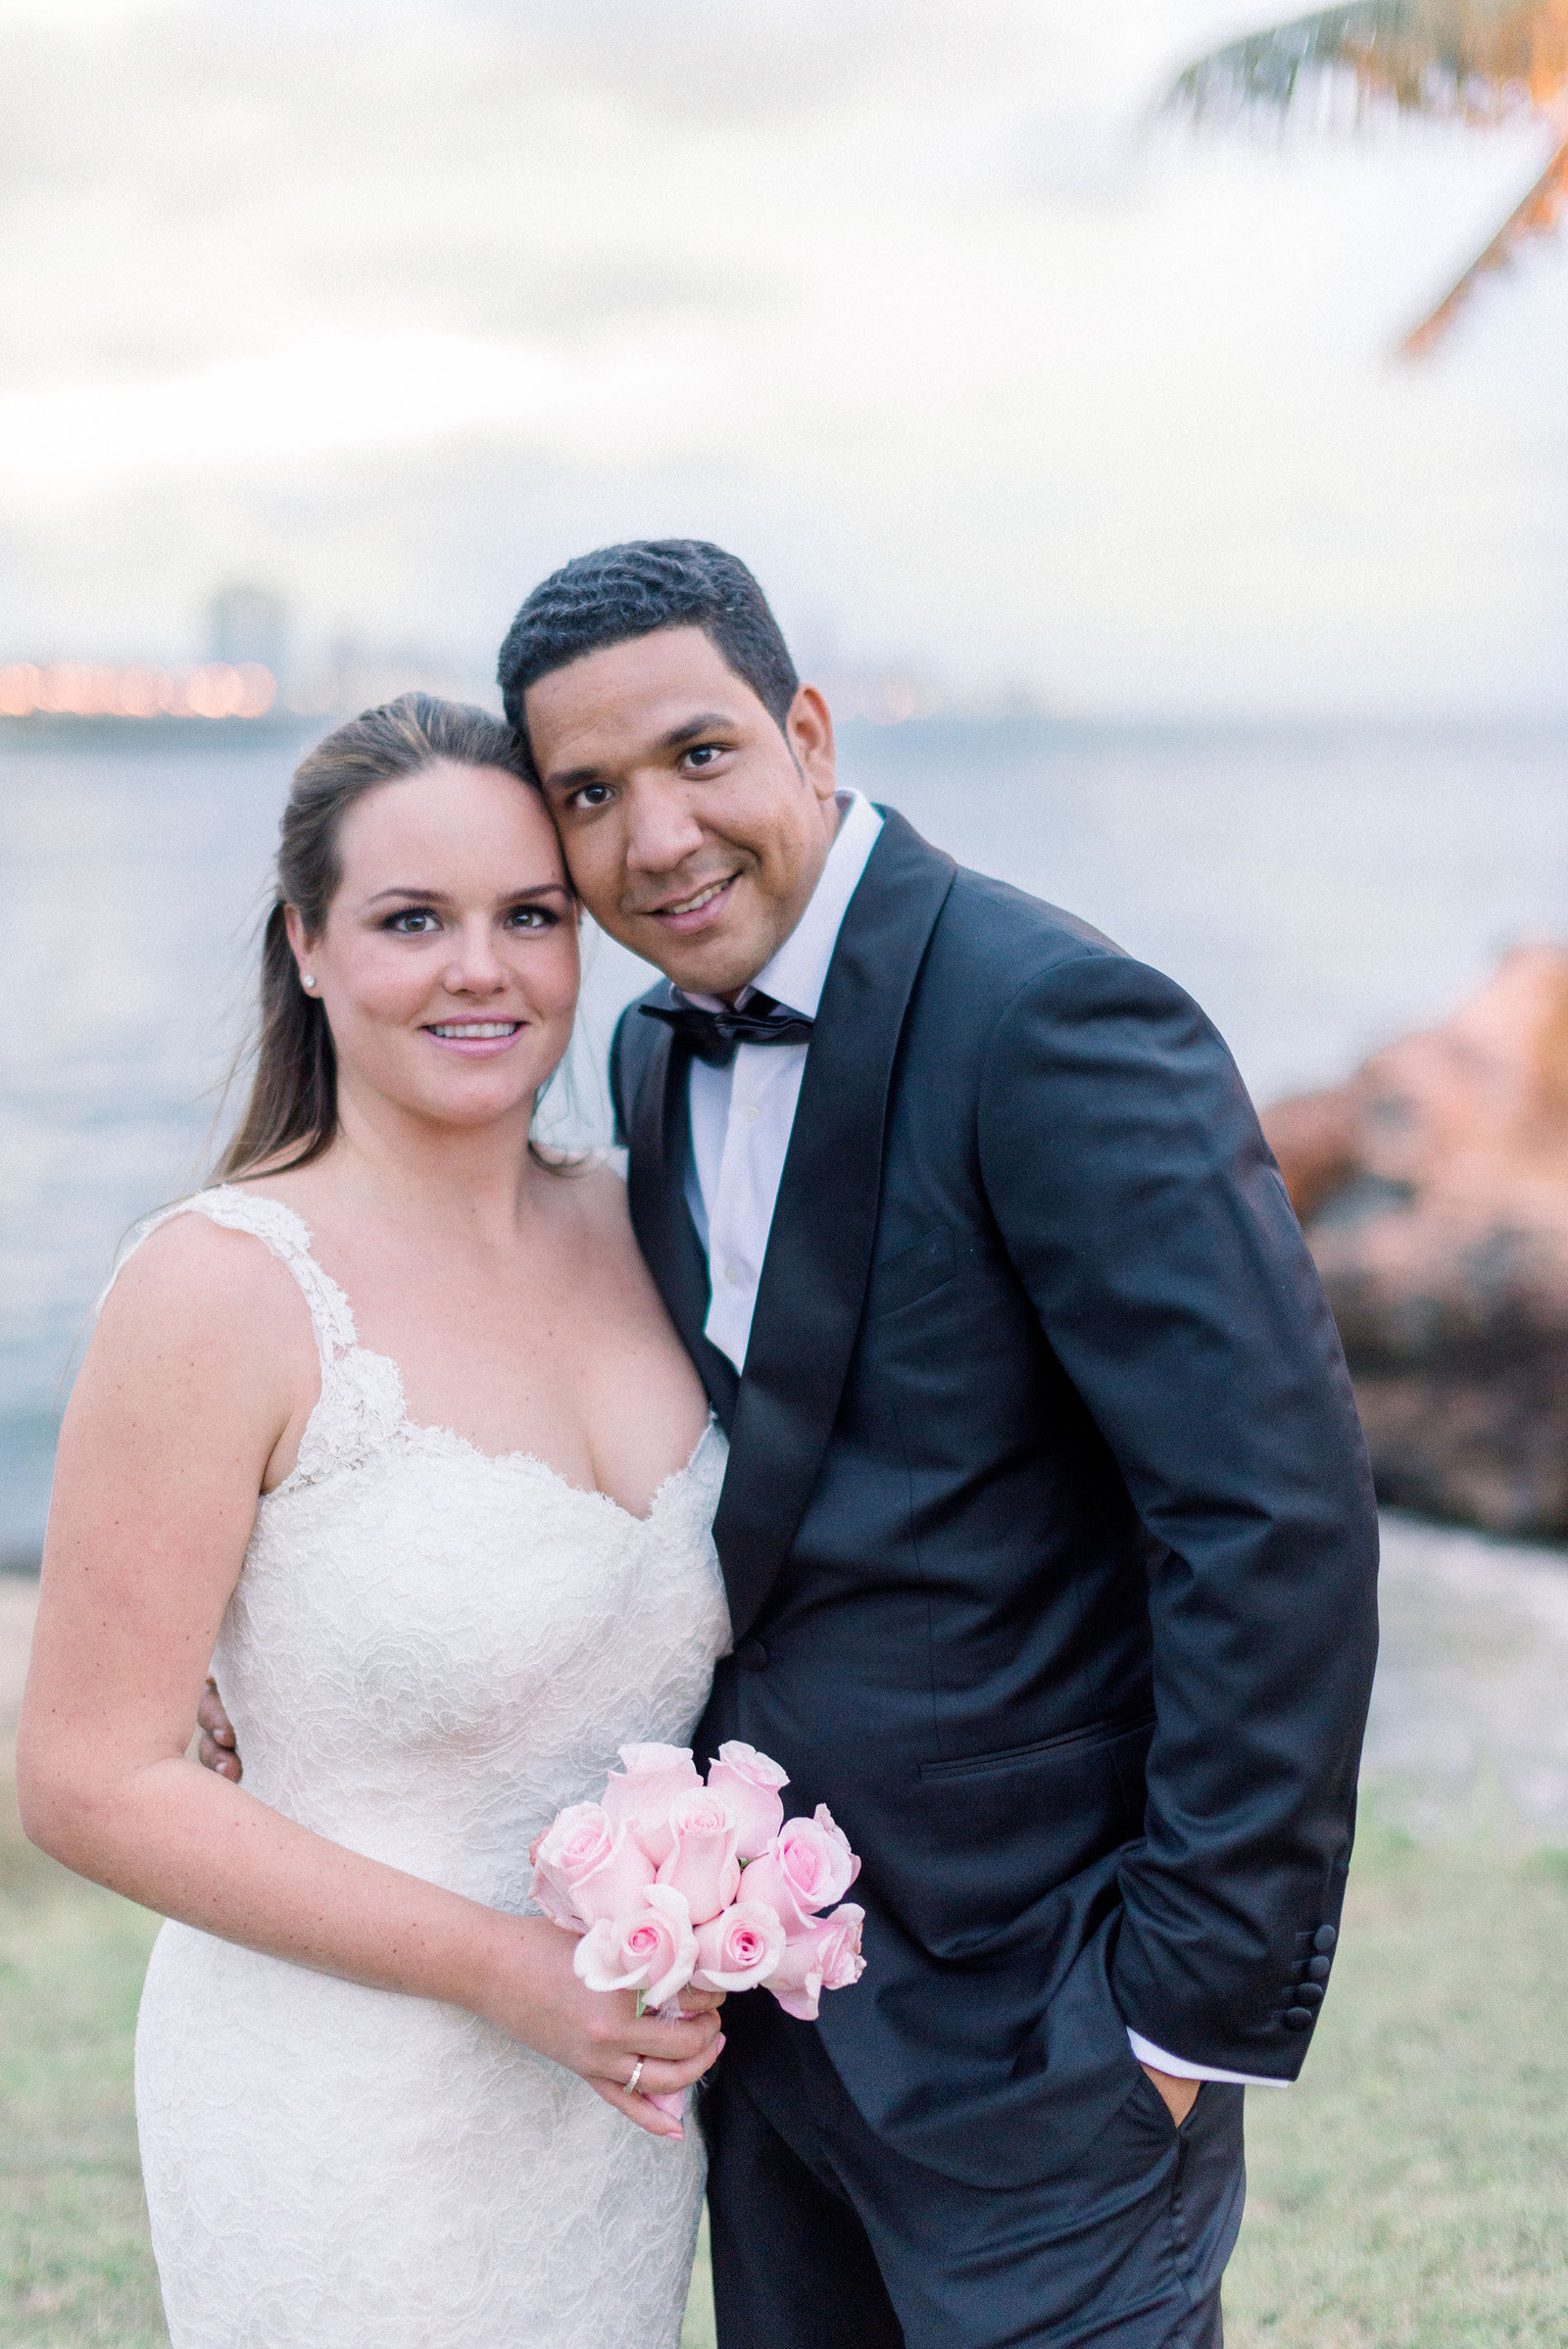 20150328-Pura-Soul-Photo-Cuba-Wedding-92